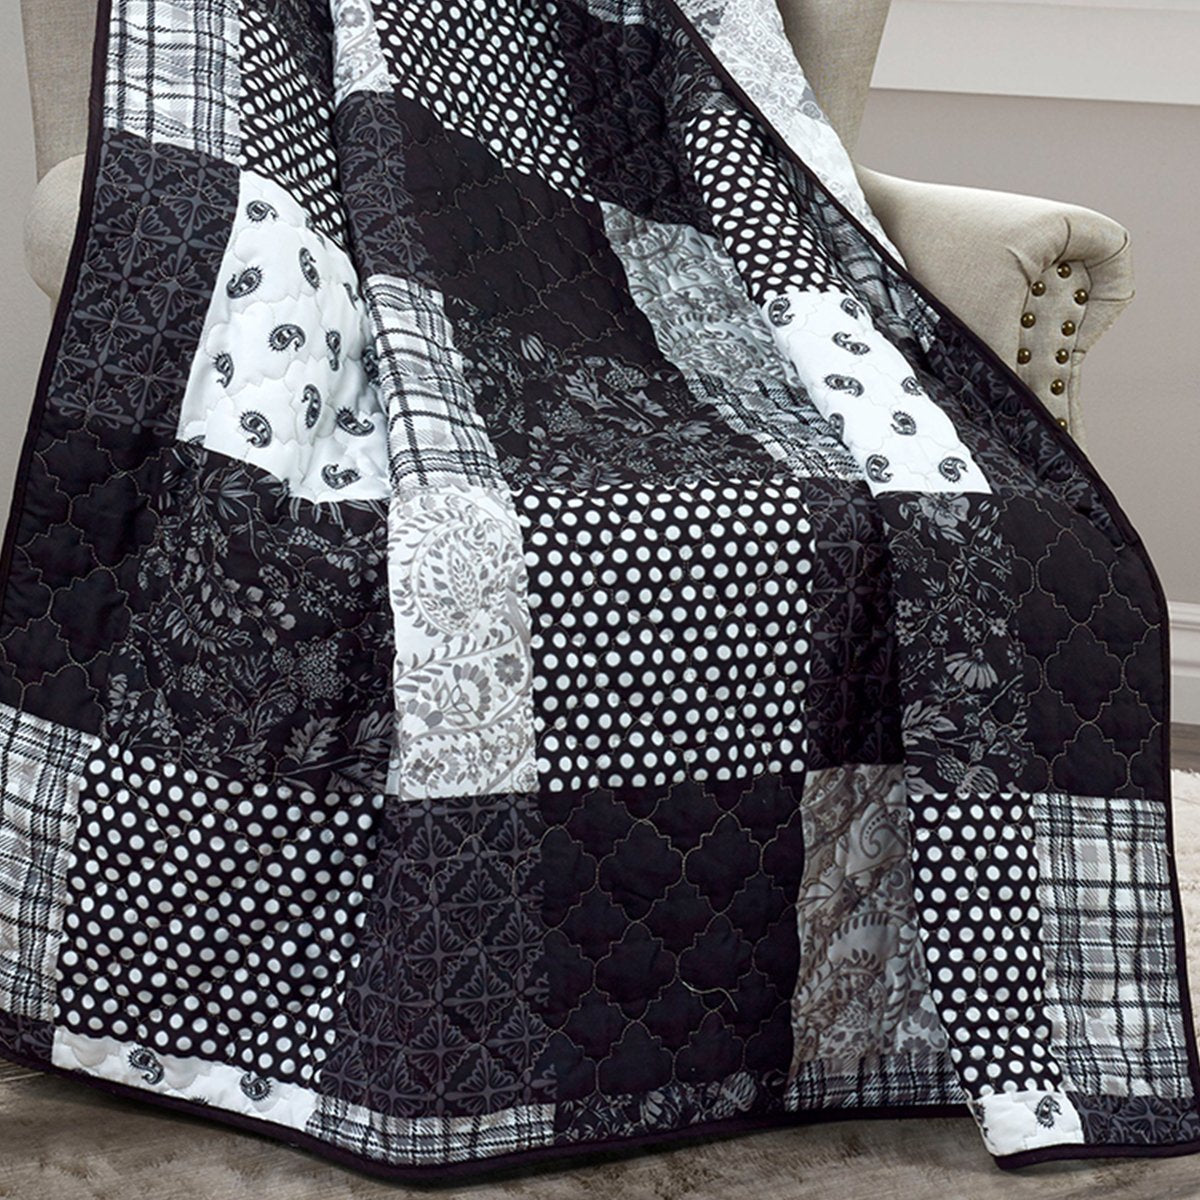 London Reversible Throw Throws By Donna Sharp